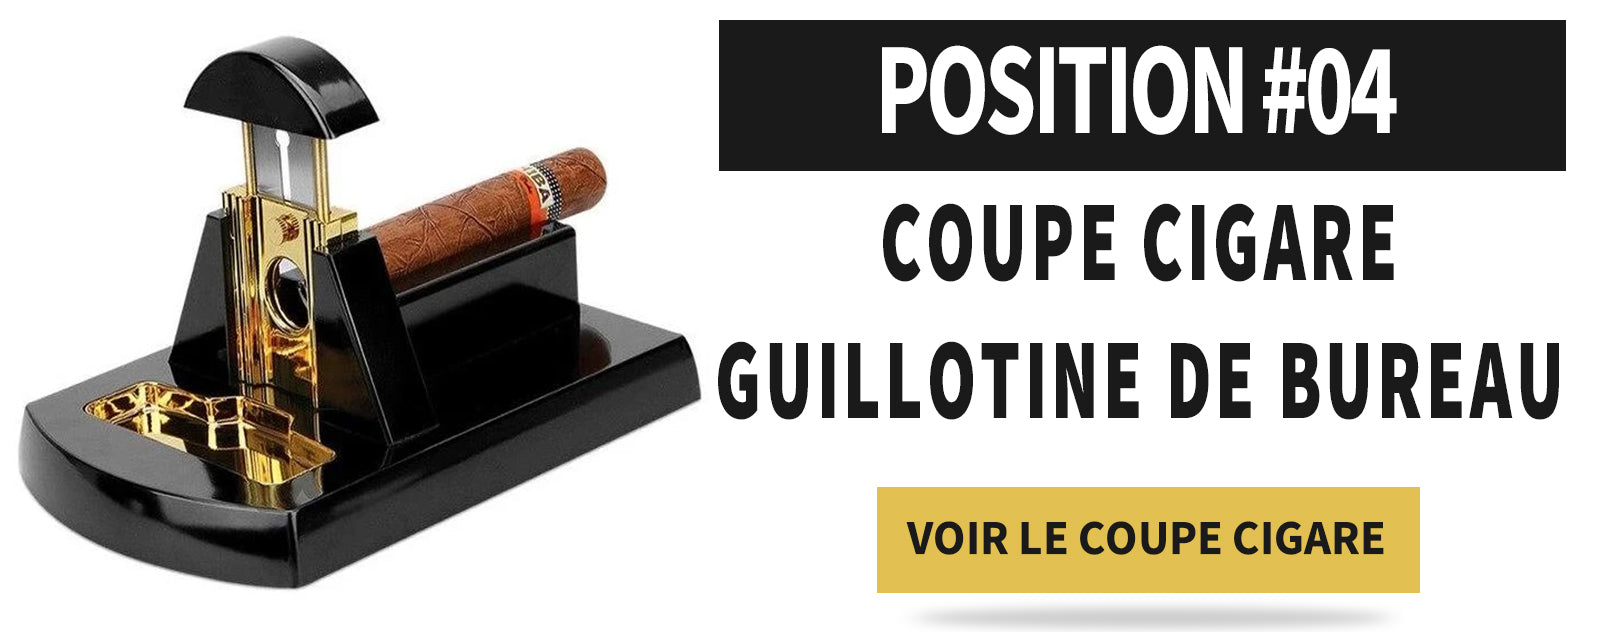 coupe cigare guillotine ancien de bureau